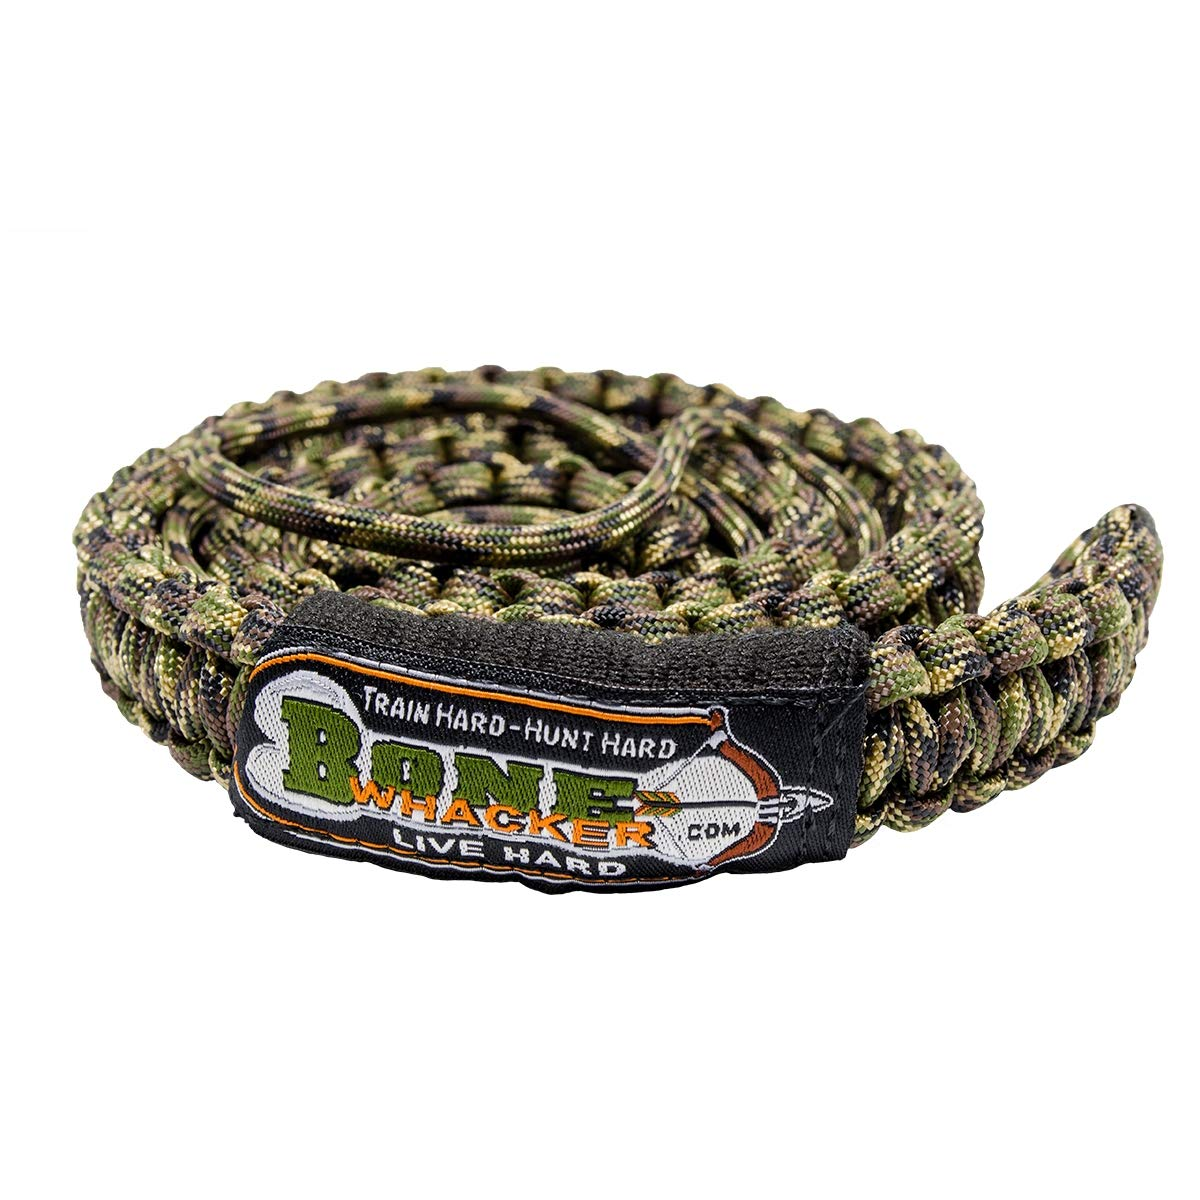 My Sling-A-Ling Pro-Series Bow Sling by BONEWHACKER.com - Neo-Magnetic, Paracord - Comfortably carry your bow and shoot without ever removing from your bow (Camo)